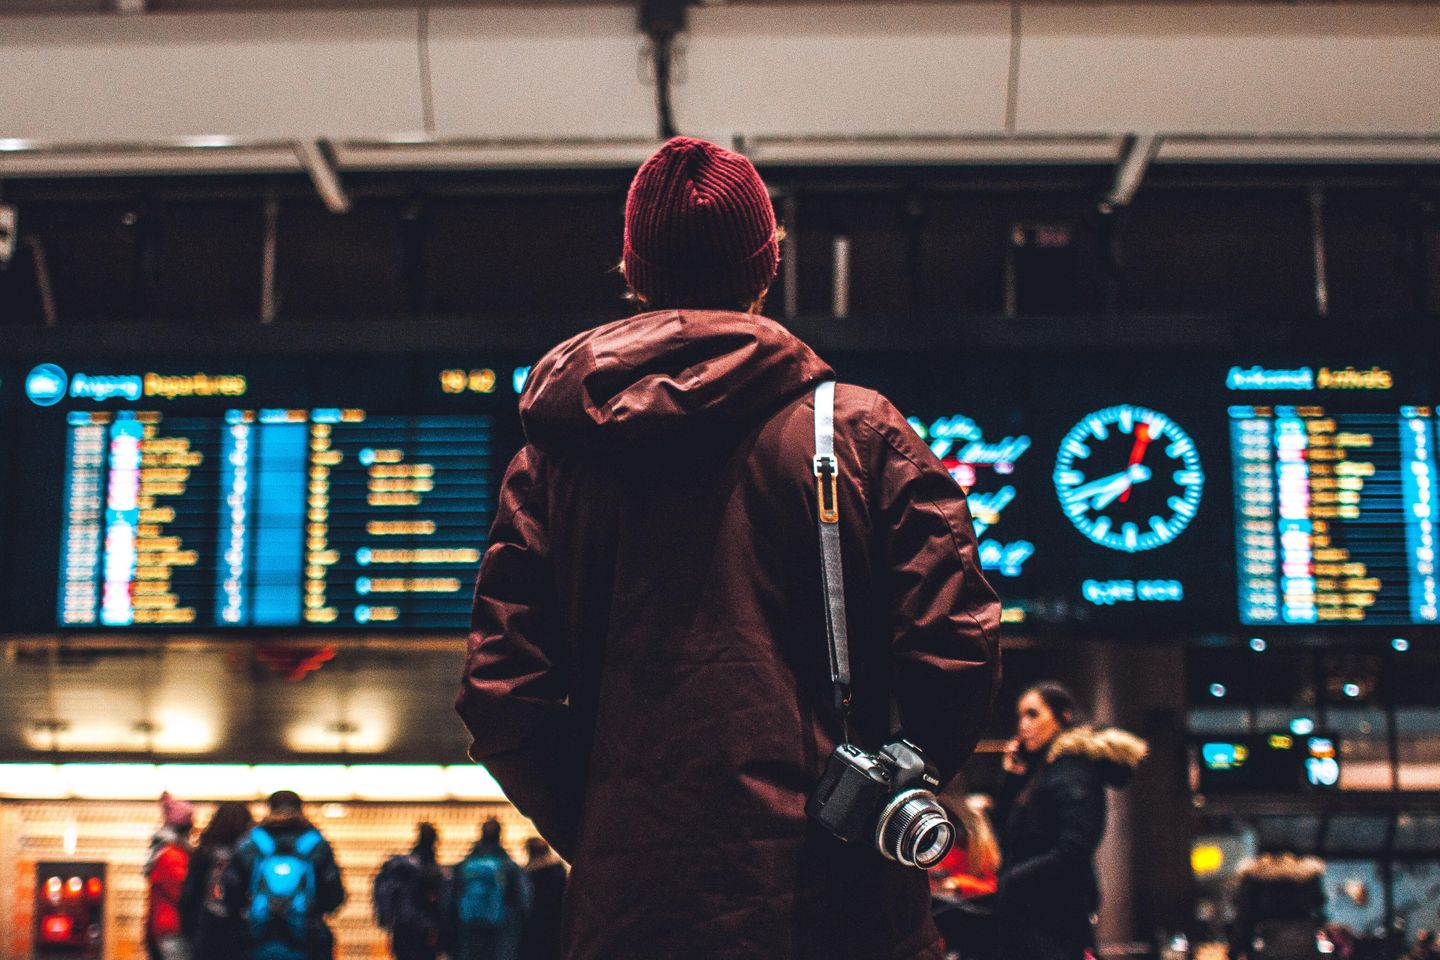 Man looking at departures list